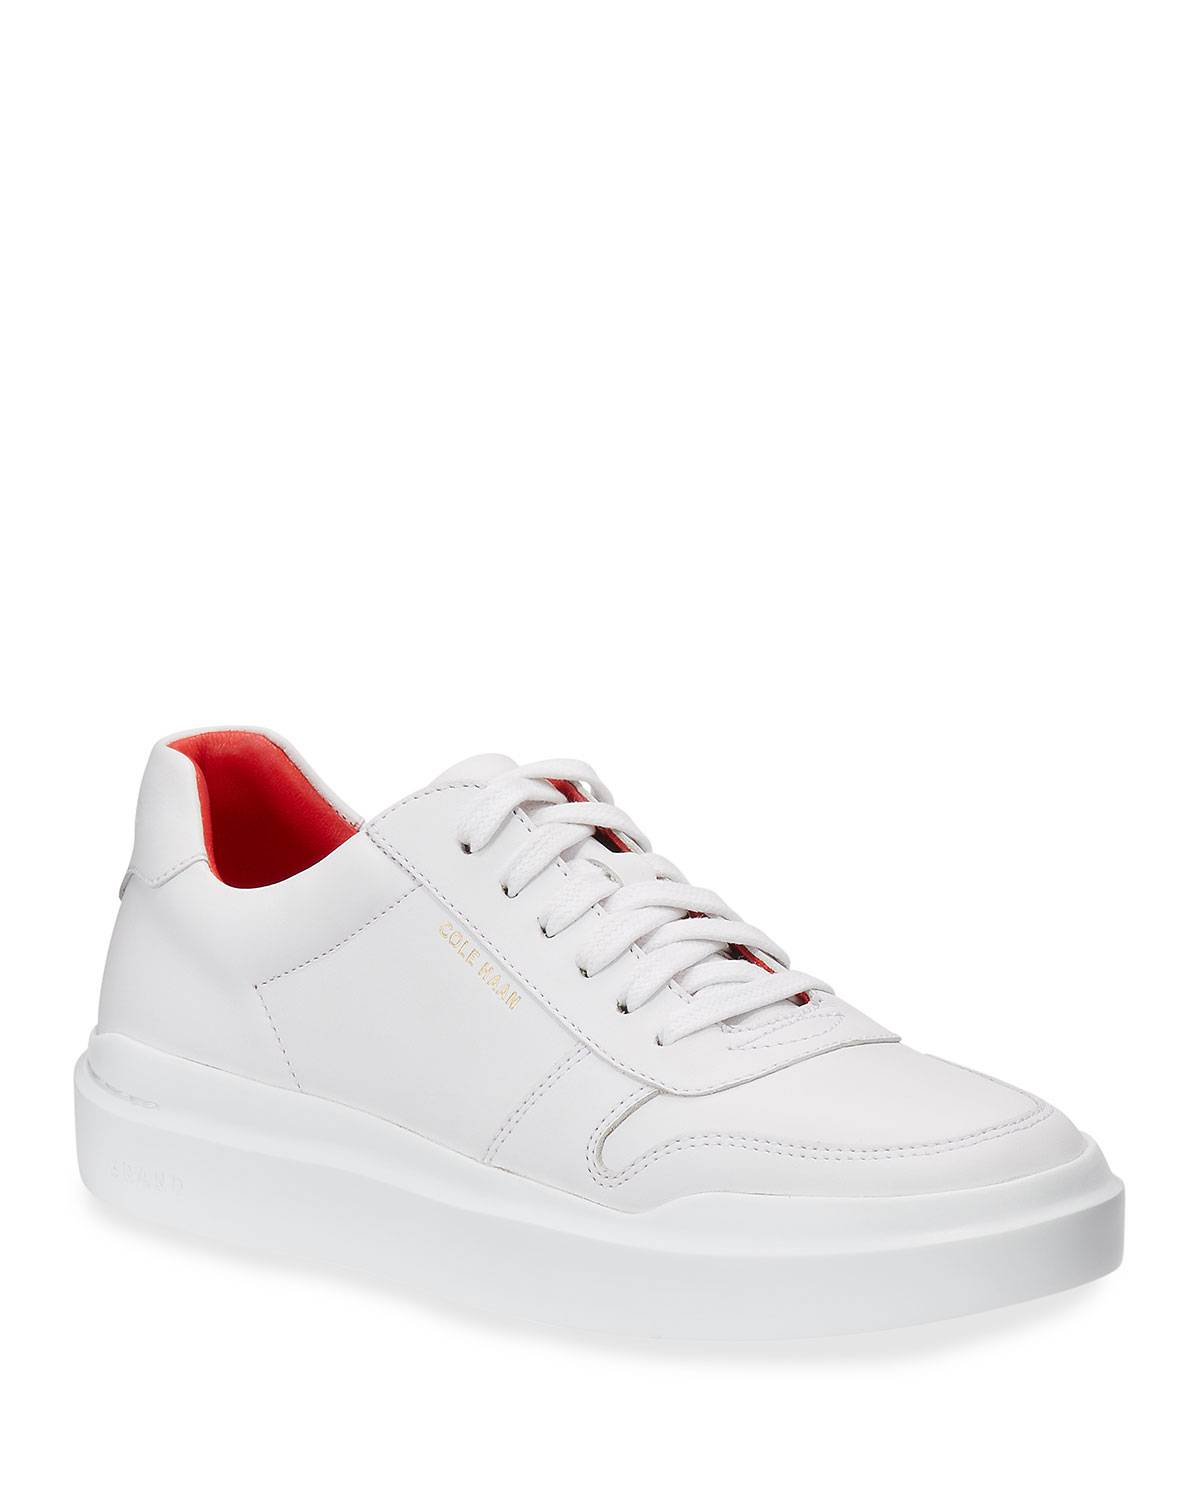 Cole Haan Grandpro Rally Court Sneakers - Size: 11B / 41EU